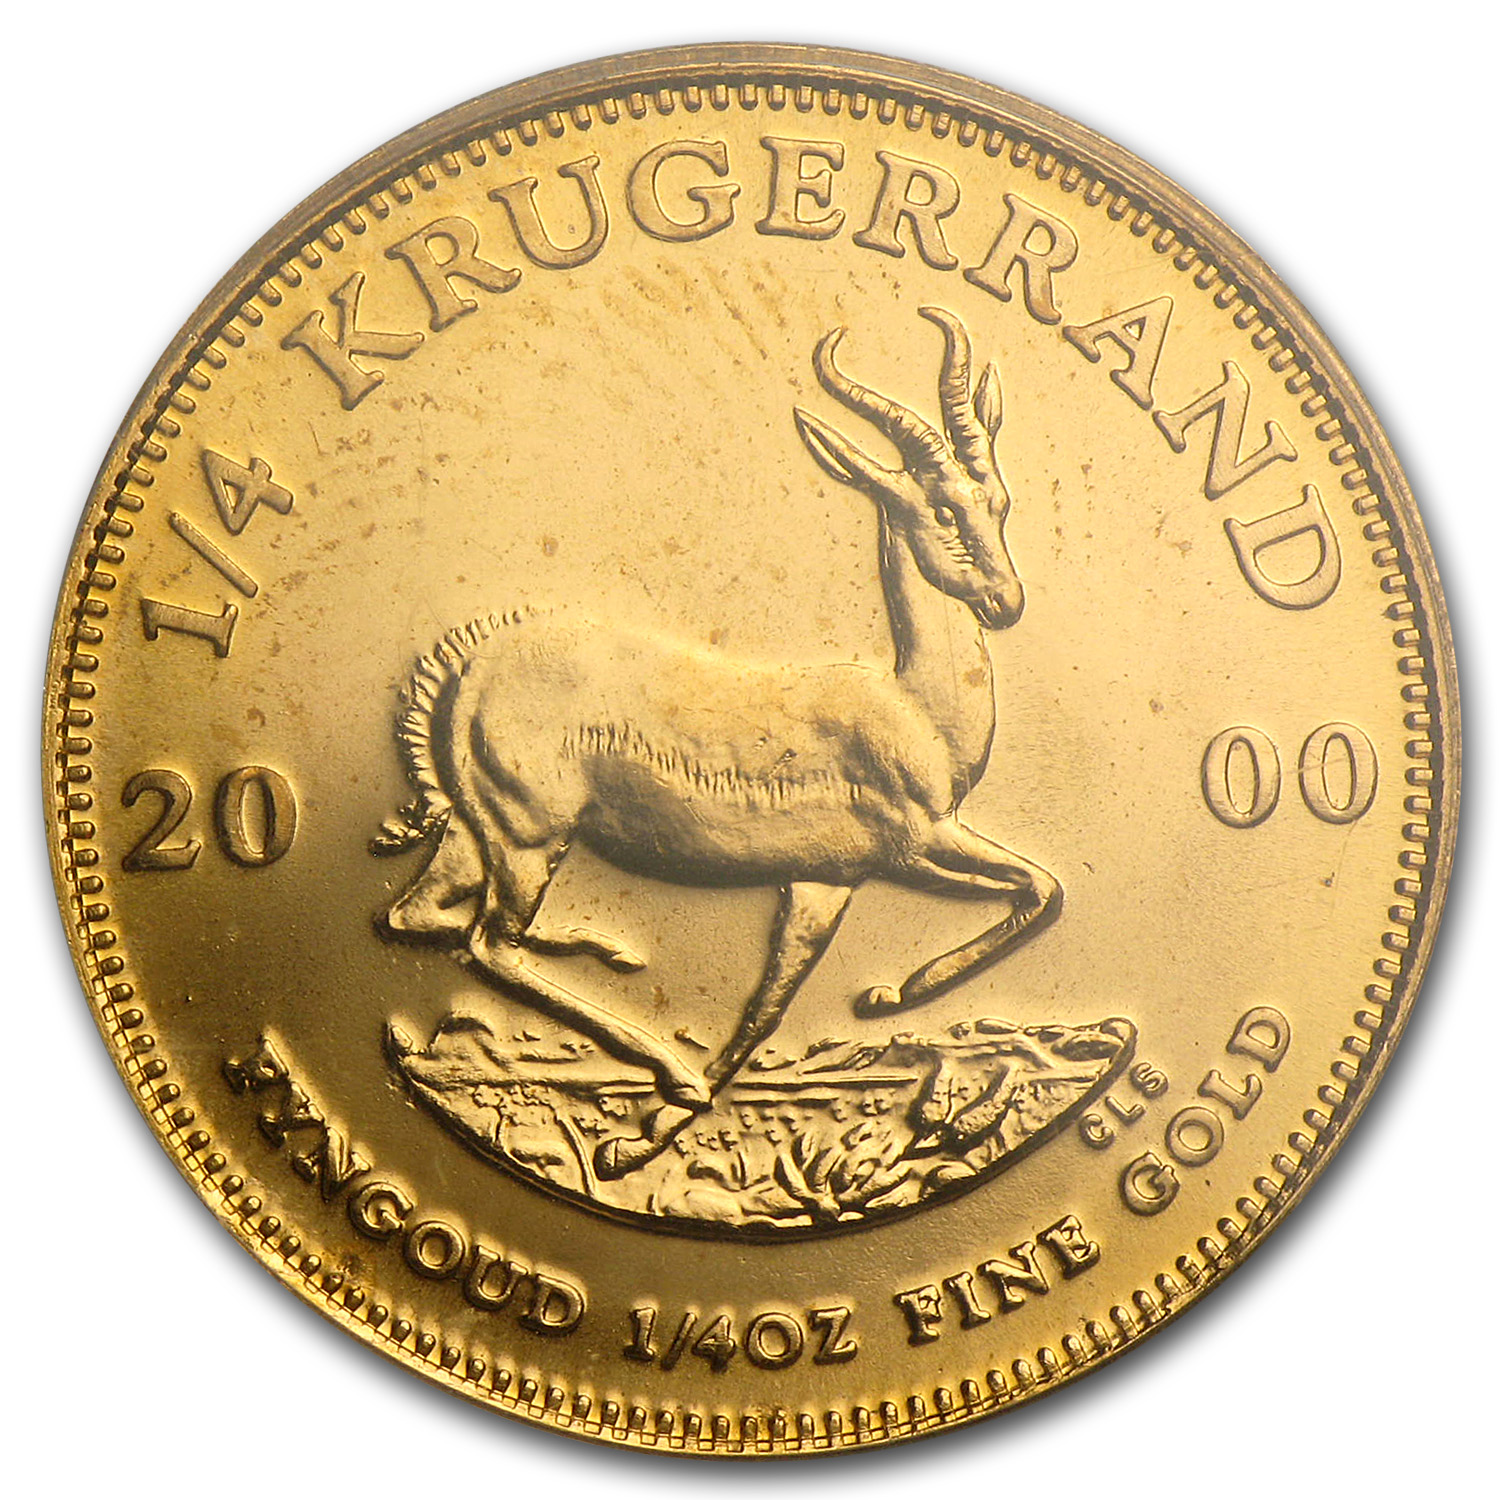 2000 1/4 oz Gold South African Krugerrand PCGS Gem Unc (WTC)